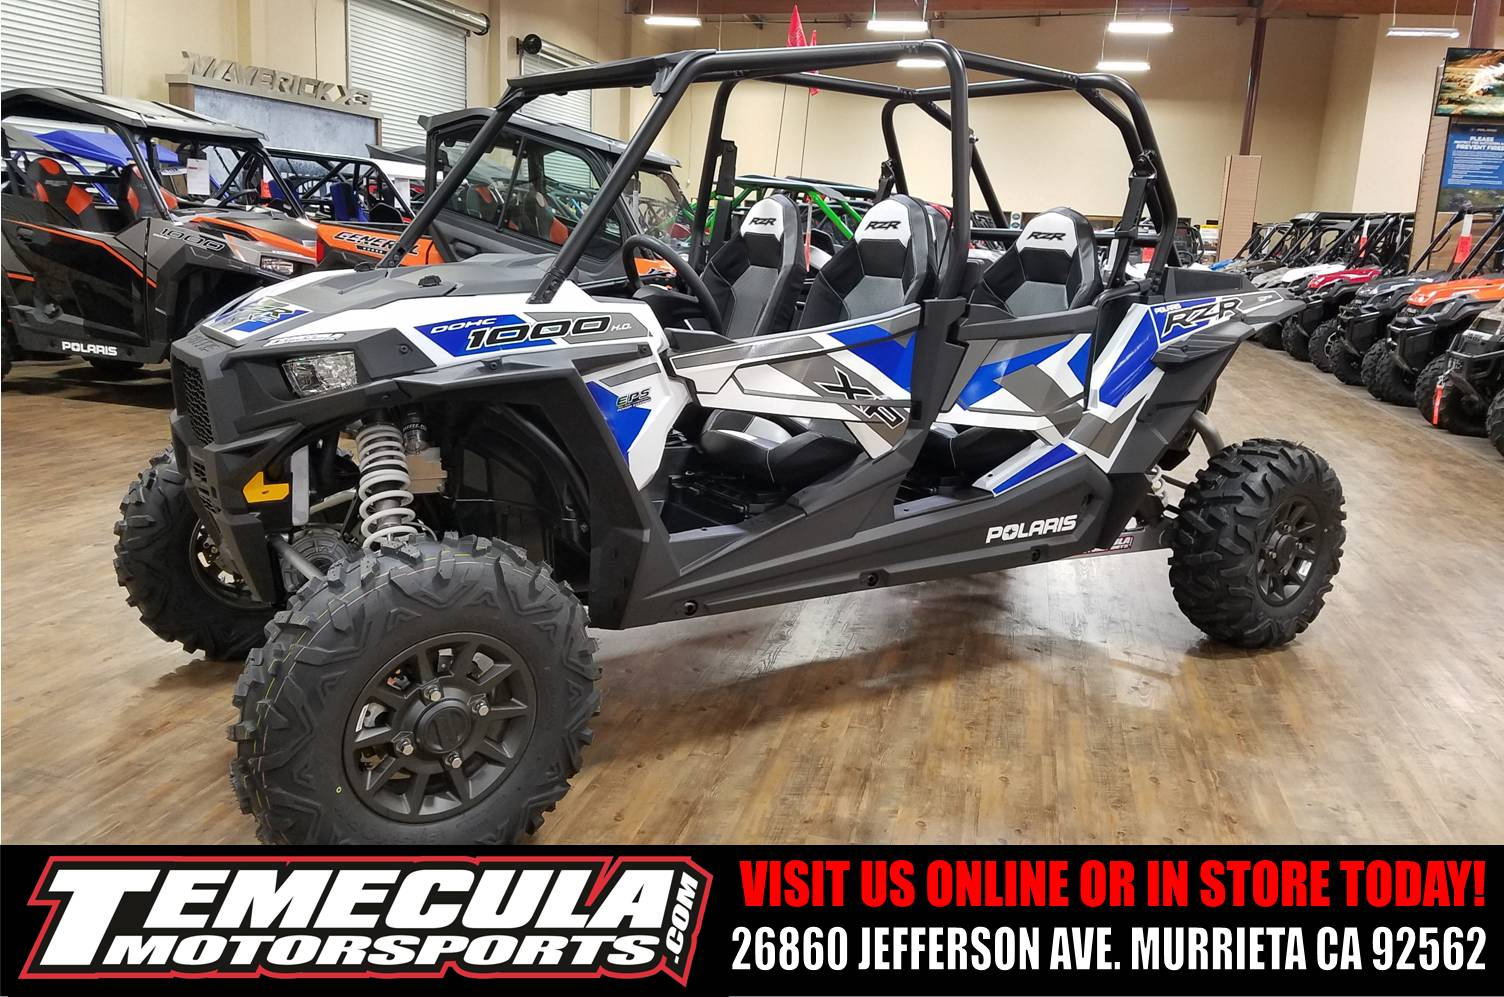 Ja additionally Fxdb Rear Lighting additionally D F A F A F Ab A D moreover Stunning Polaris Trail Boss Wiring Diagram Contemporary Of Polaris Trail Boss Wiring Diagram moreover Body Mount Front Rear. on 3nbxu sportsman 500 doesn t start no click dash